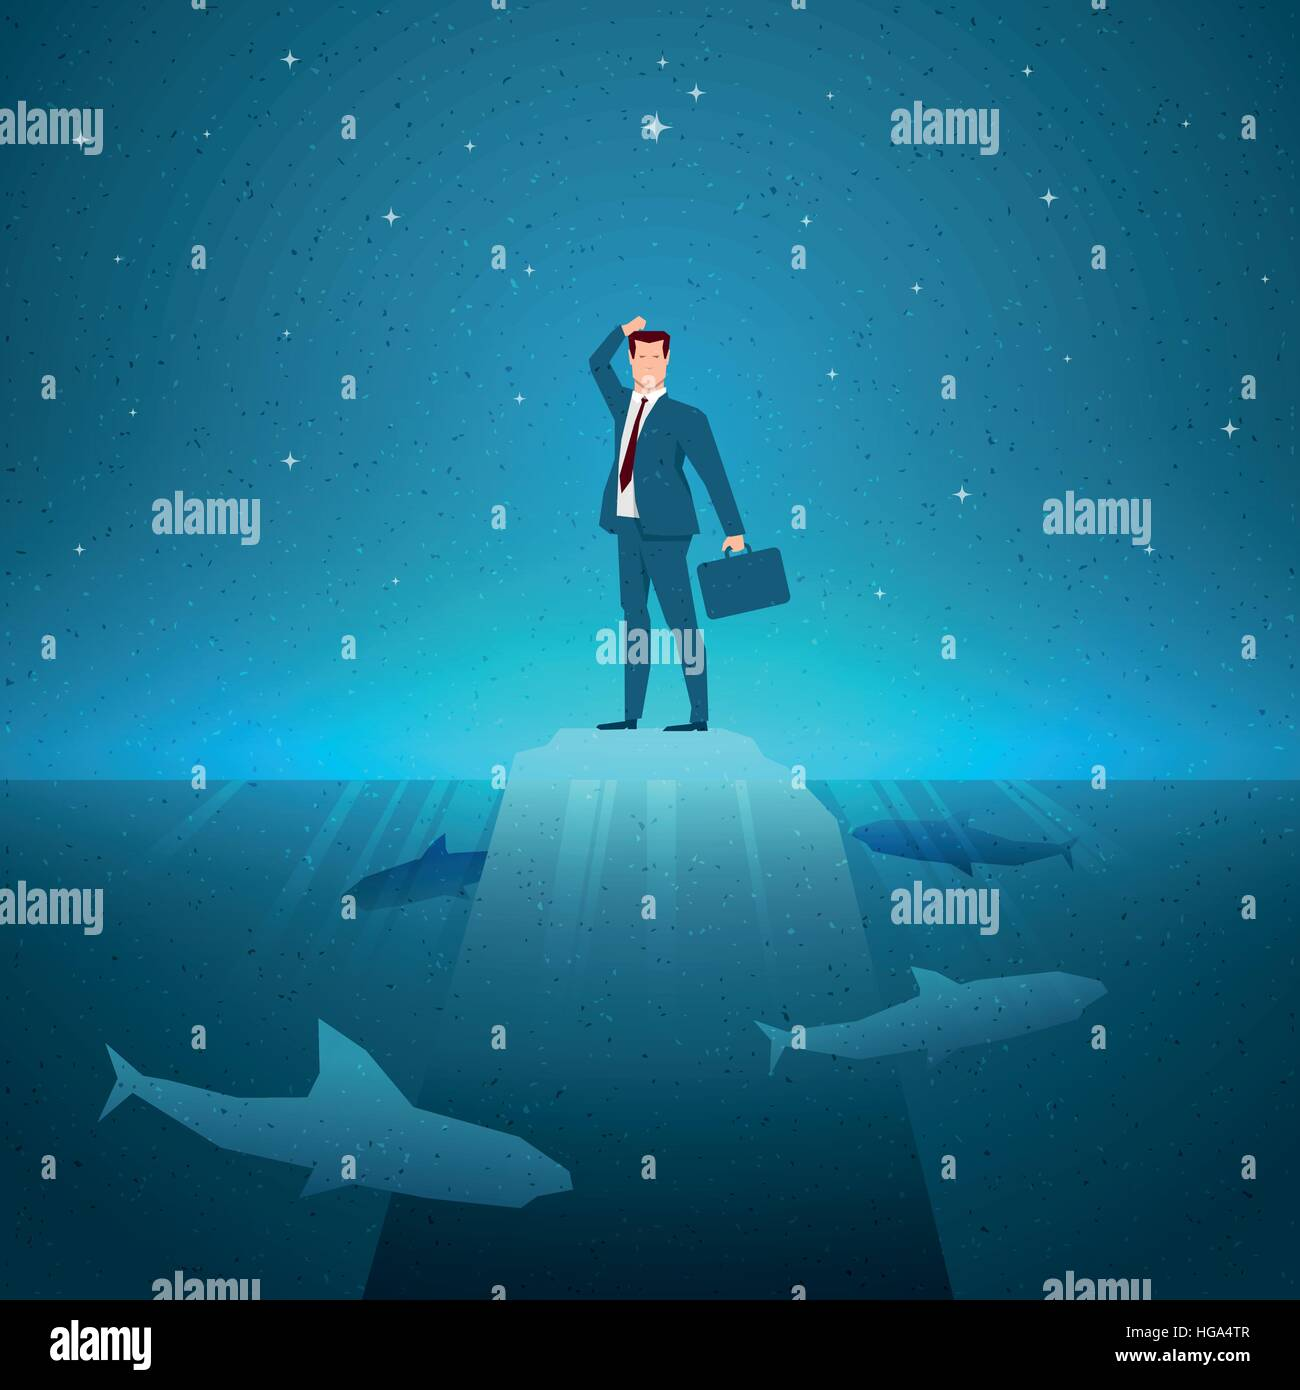 Business concept vector illustration. Trouble, problem, risk, danger, crisis concept. Elements are layered separately - Stock Vector